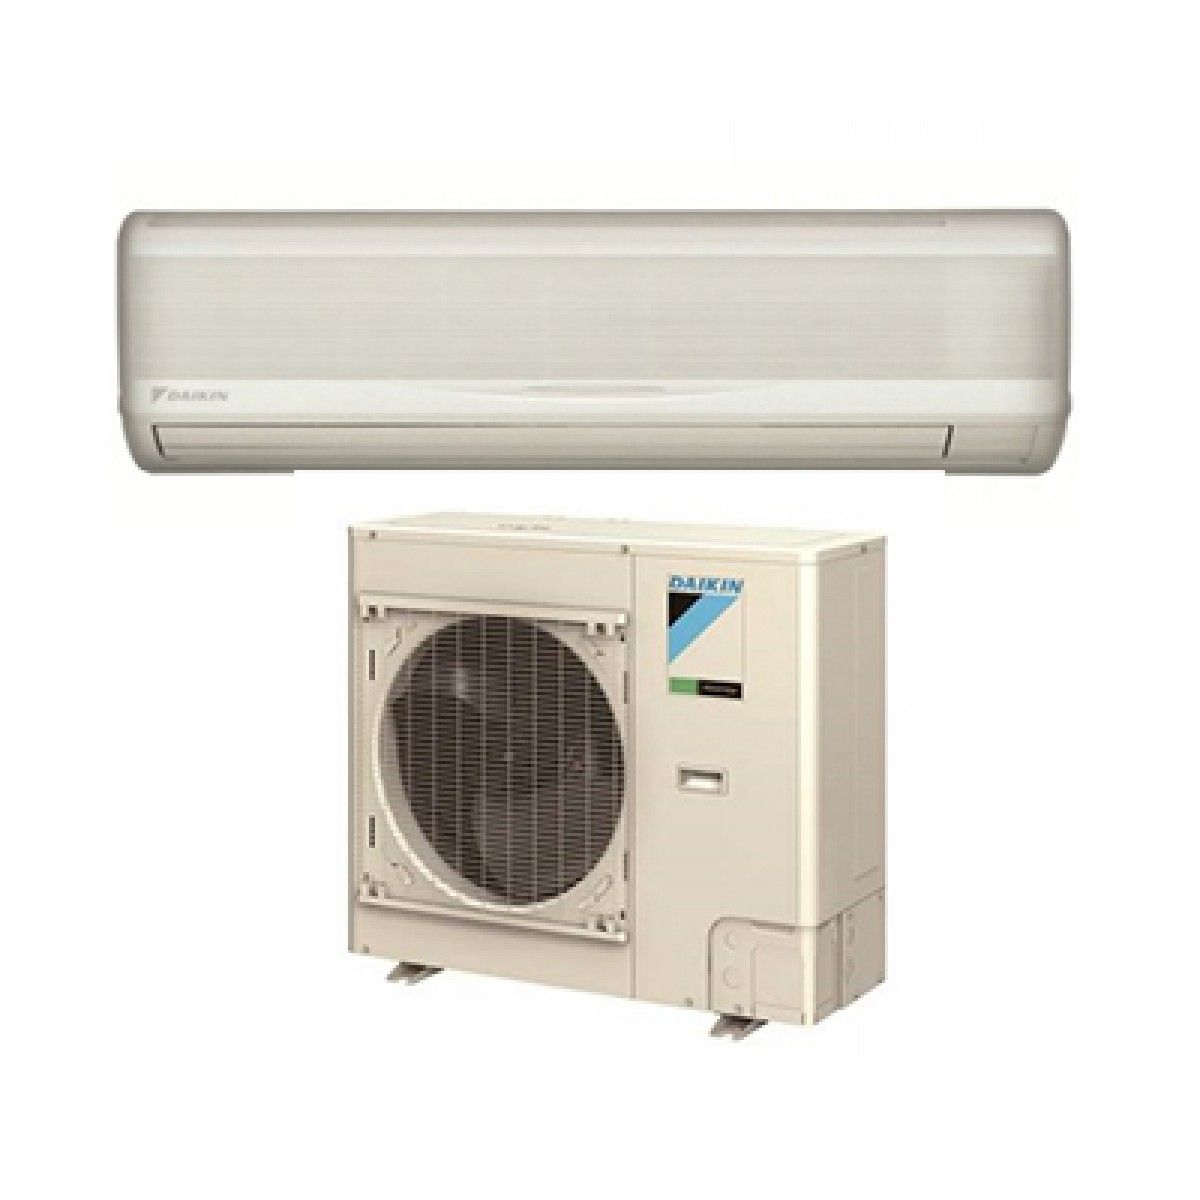 Daikin skyair 18k btu 18 6 seer heat pump system with wall Ductless ac